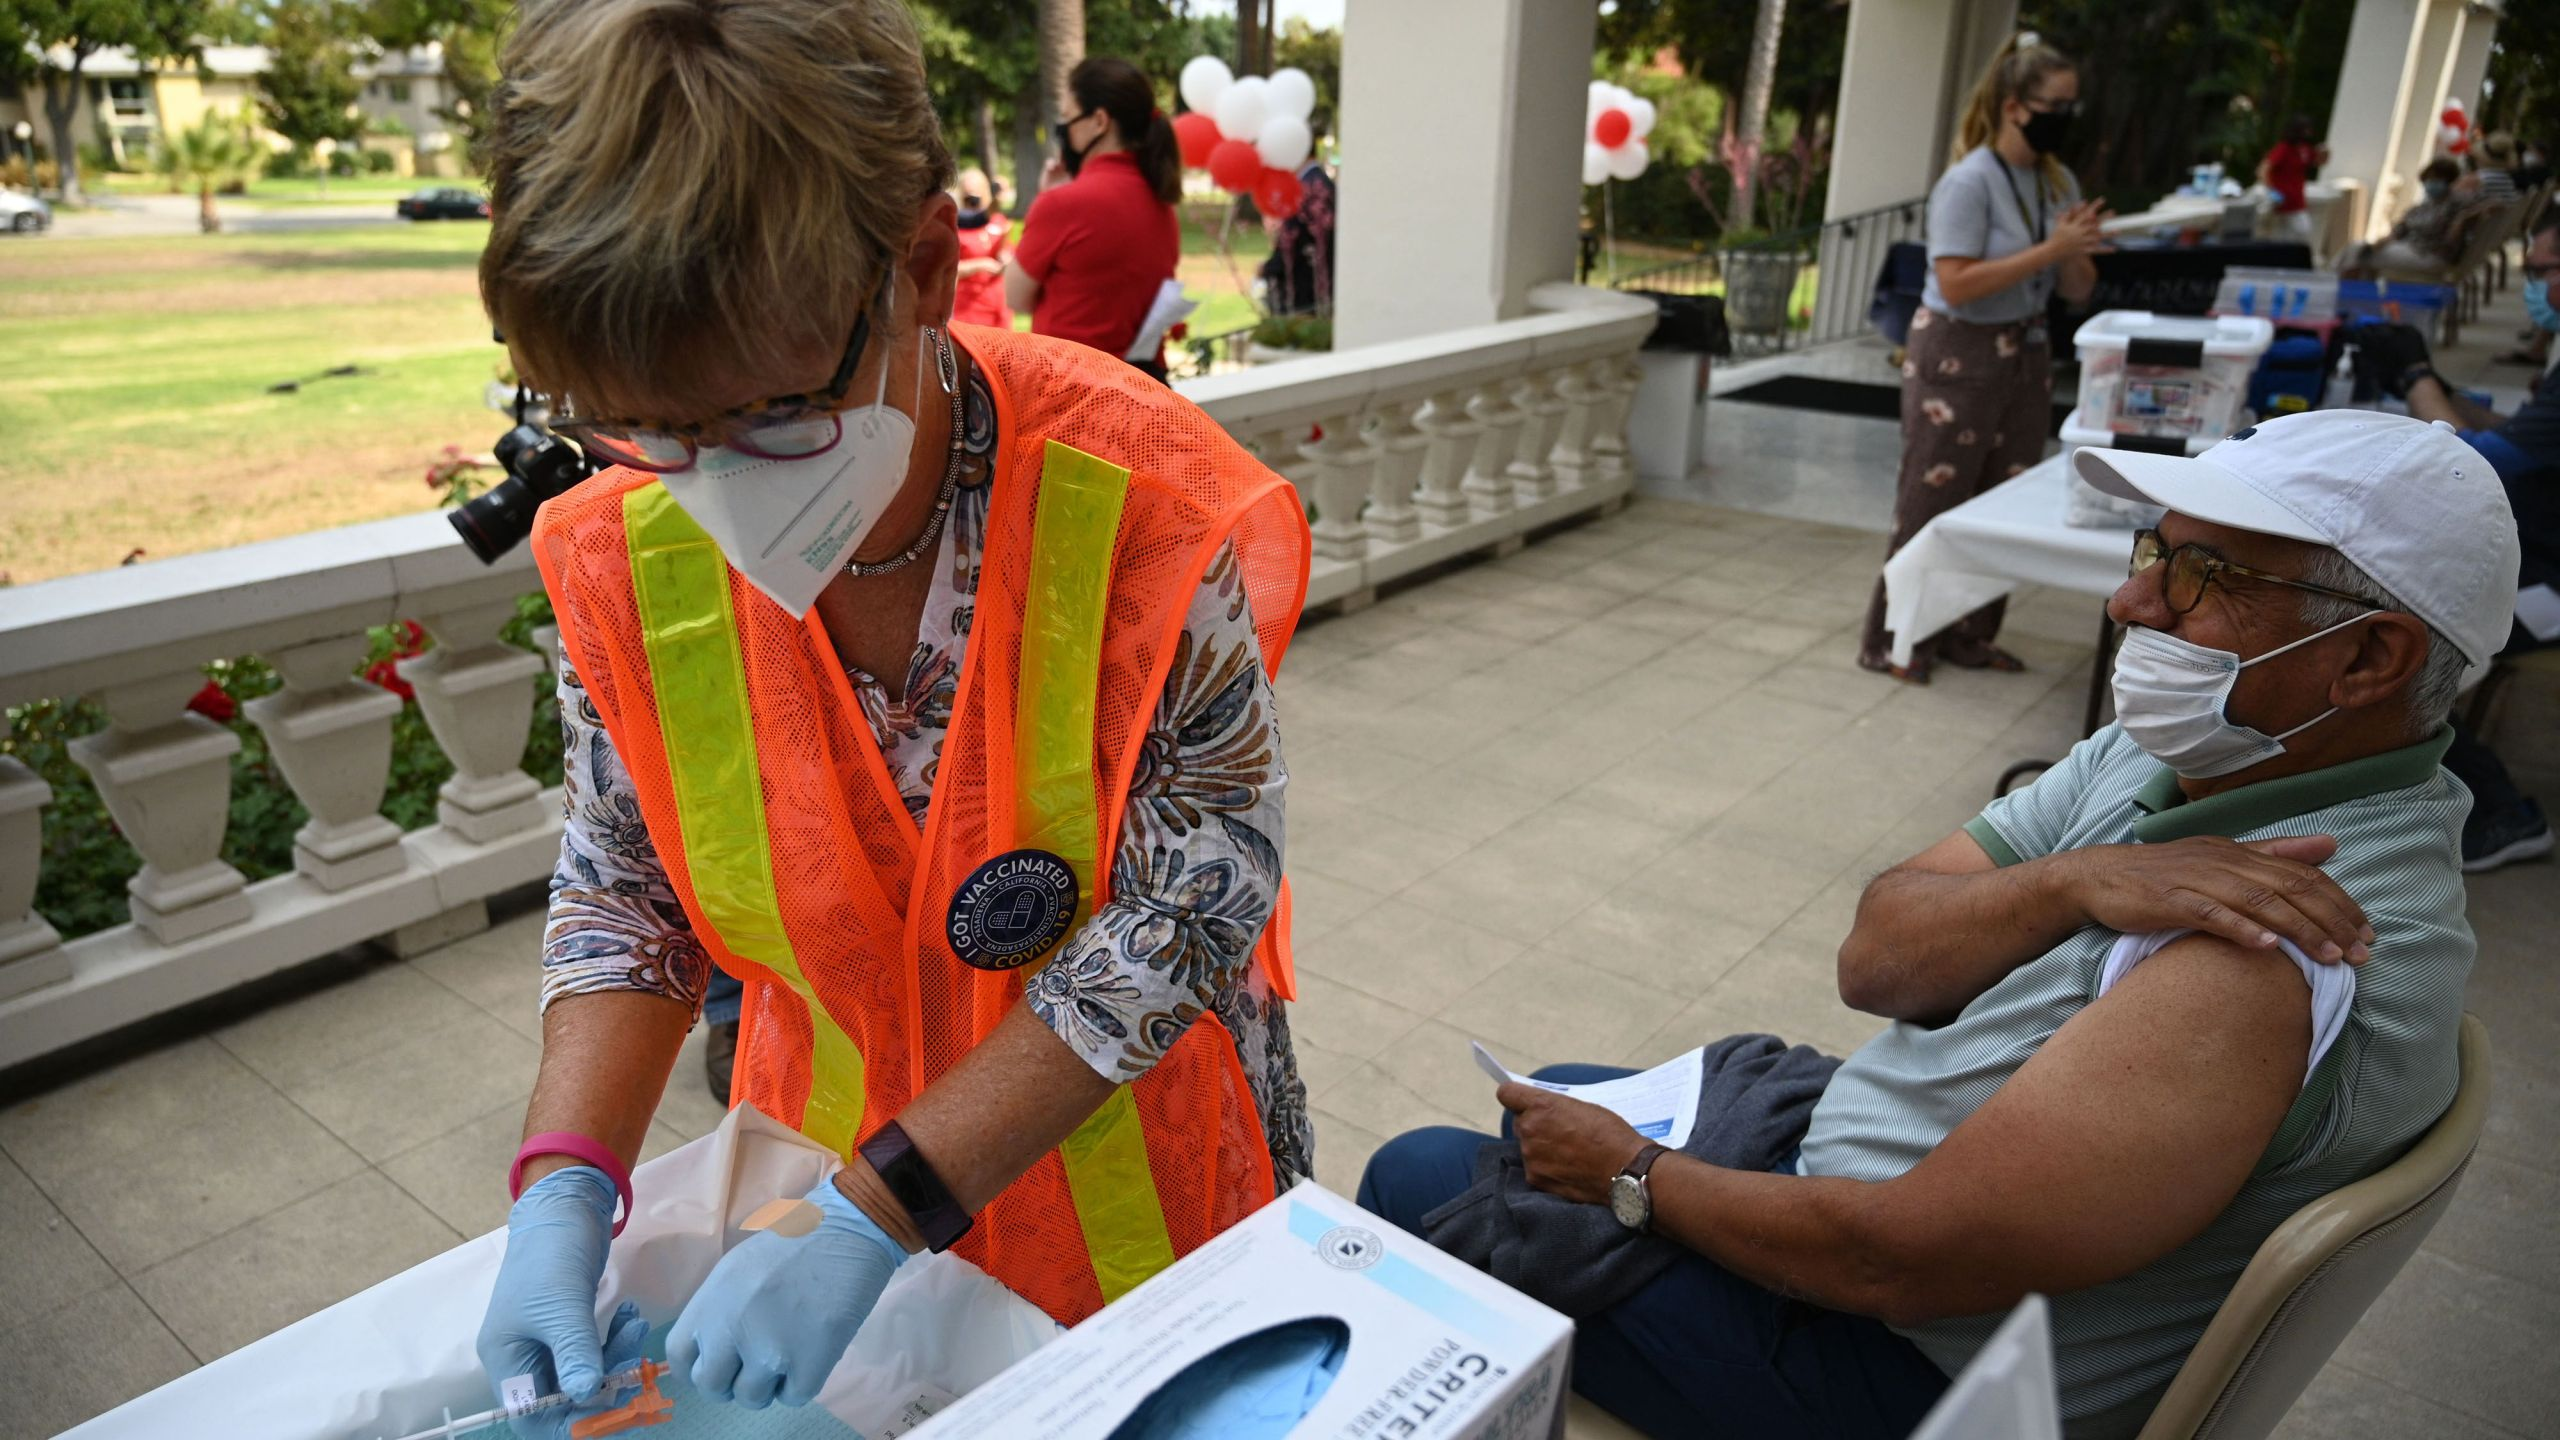 A nurse prepares a first dose of the Pfizer COVID-19 vaccine for Jose Luis Sanchez at a clinic hosted by The Tournament of Roses in partnership with the Pasadena Public Health Department on Aug. 19, 2021 at Tournament House in Pasadena. (ROBYN BECK/AFP via Getty Images)